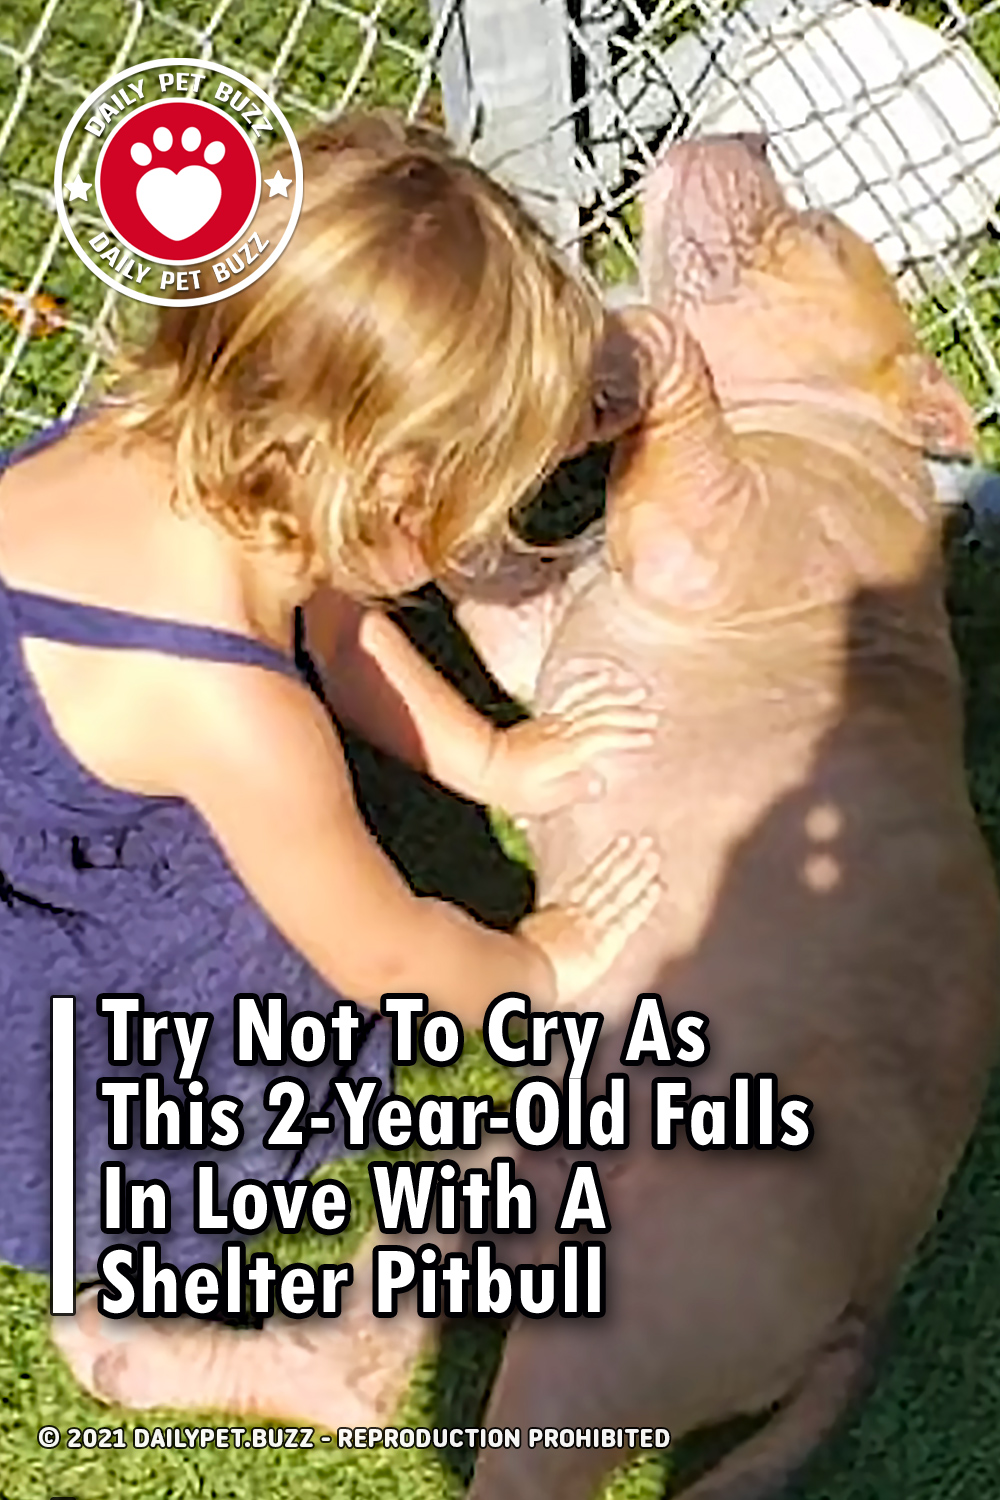 Try Not To Cry As This 2-Year-Old Falls In Love With A Shelter Pitbull